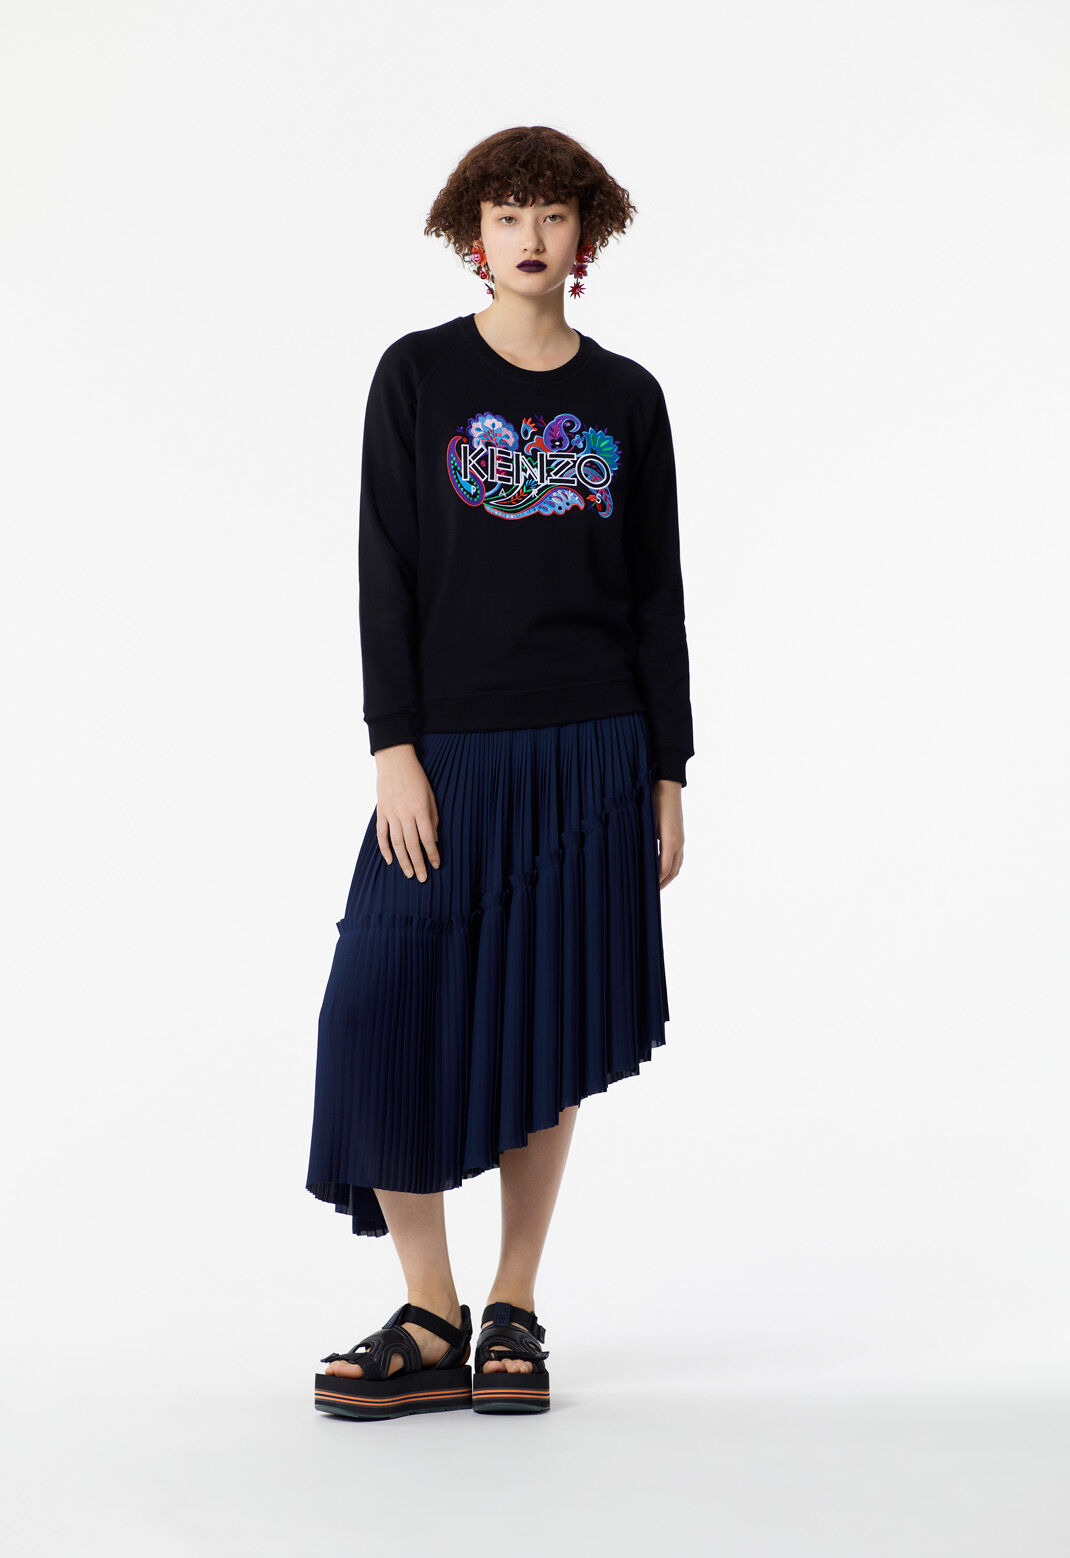 BLACK Paisley KENZO Sweatshirt for women